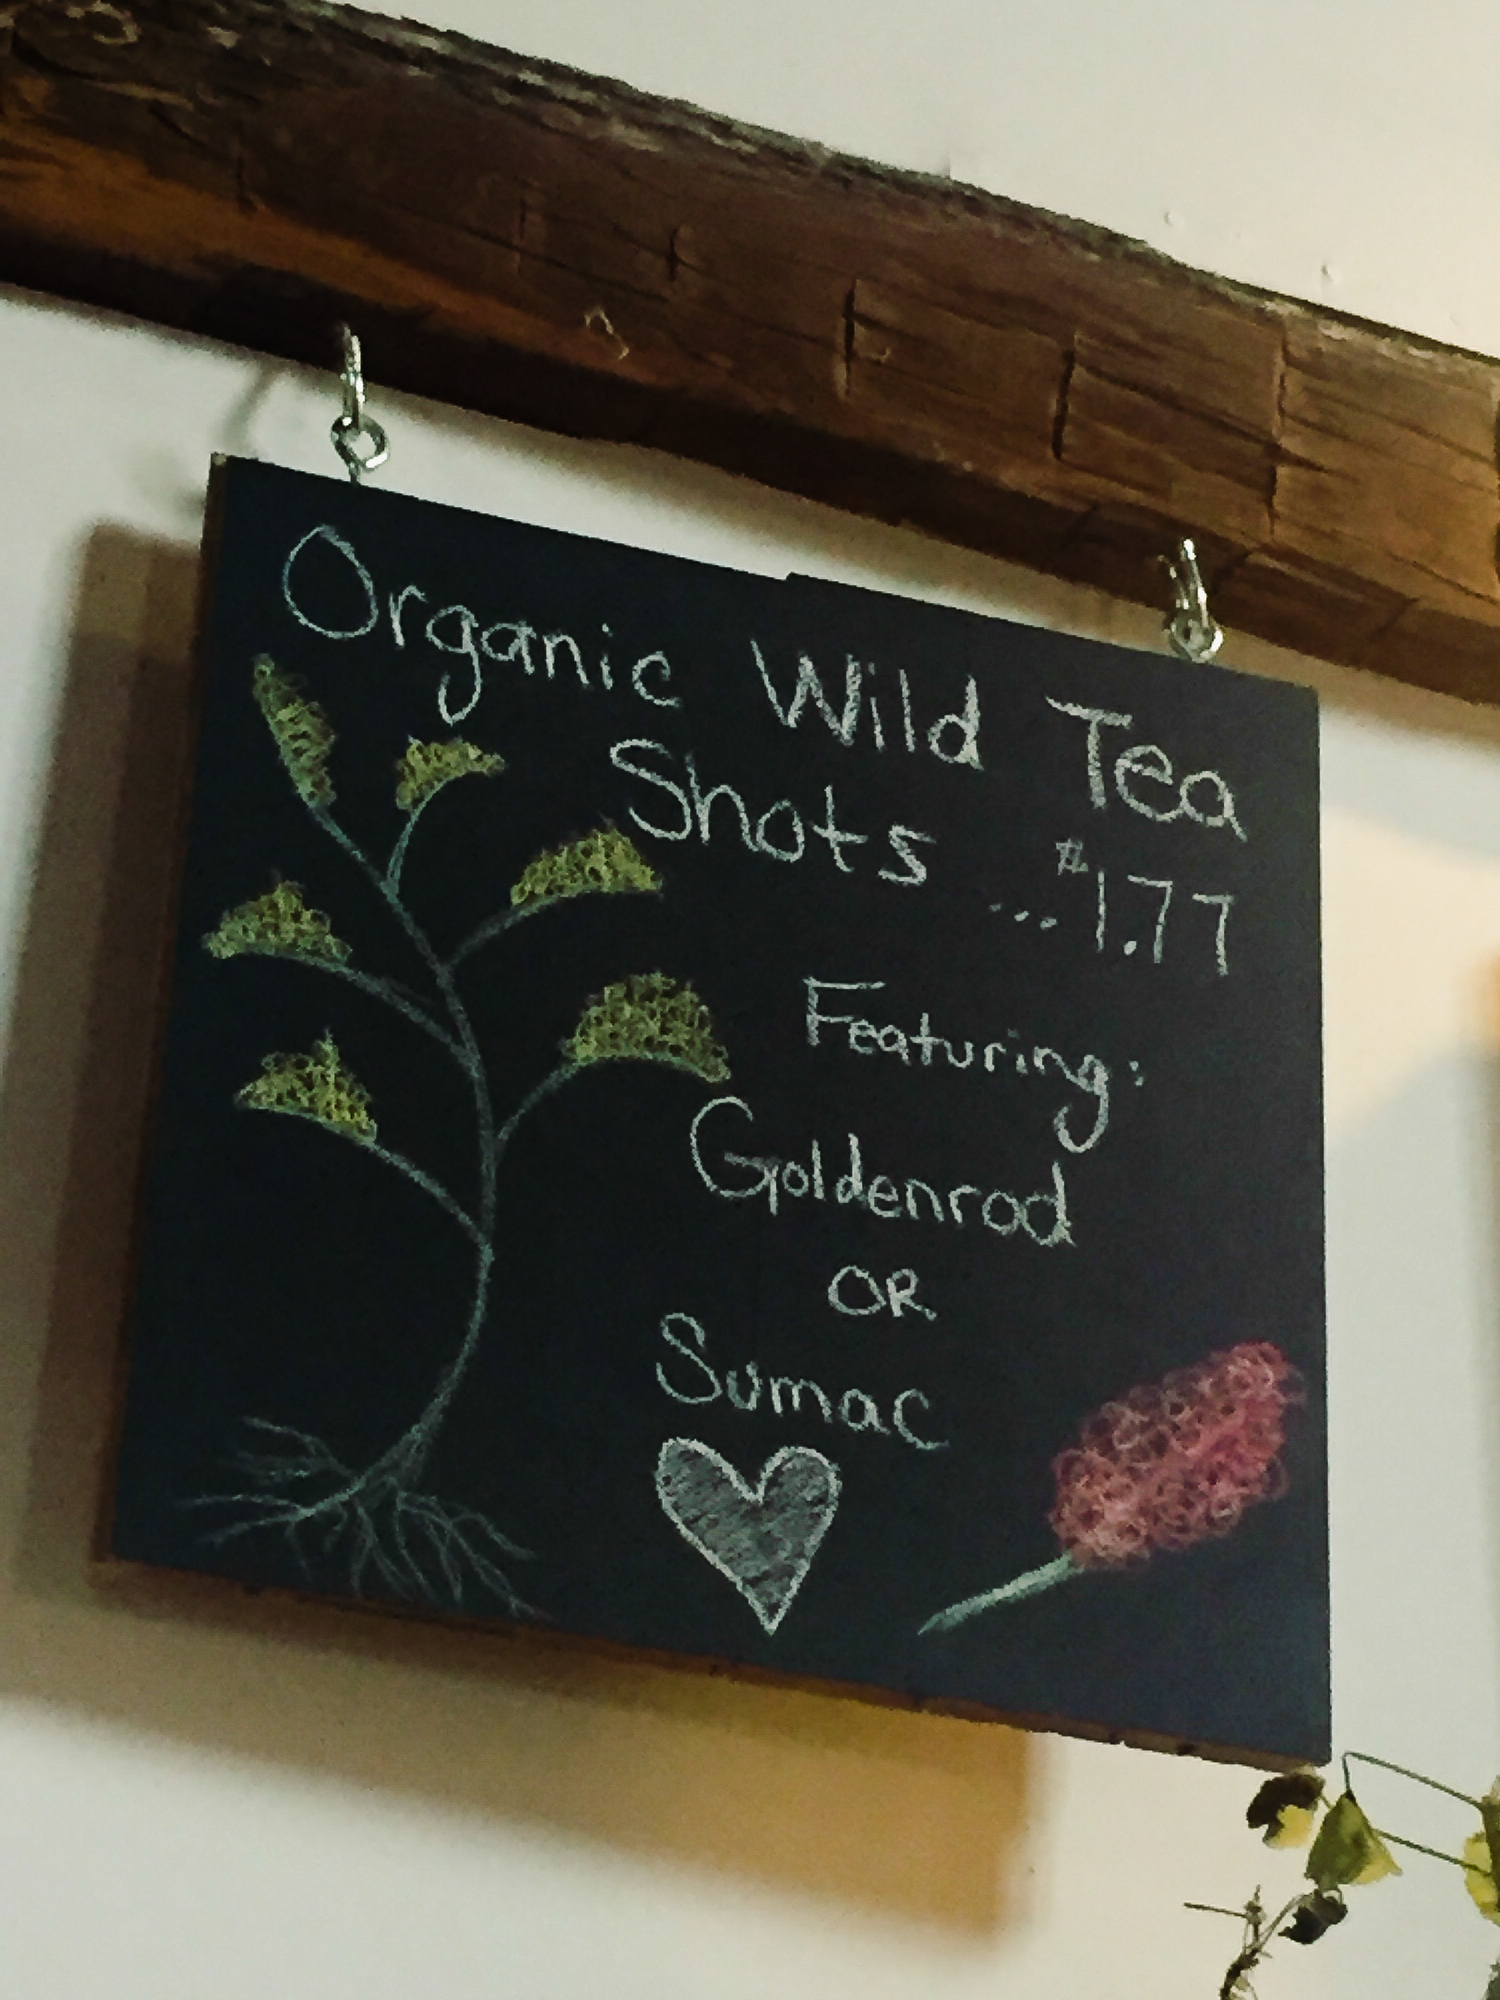 The Barn Co-operative Network in Meaford has wild tea shot tastings.